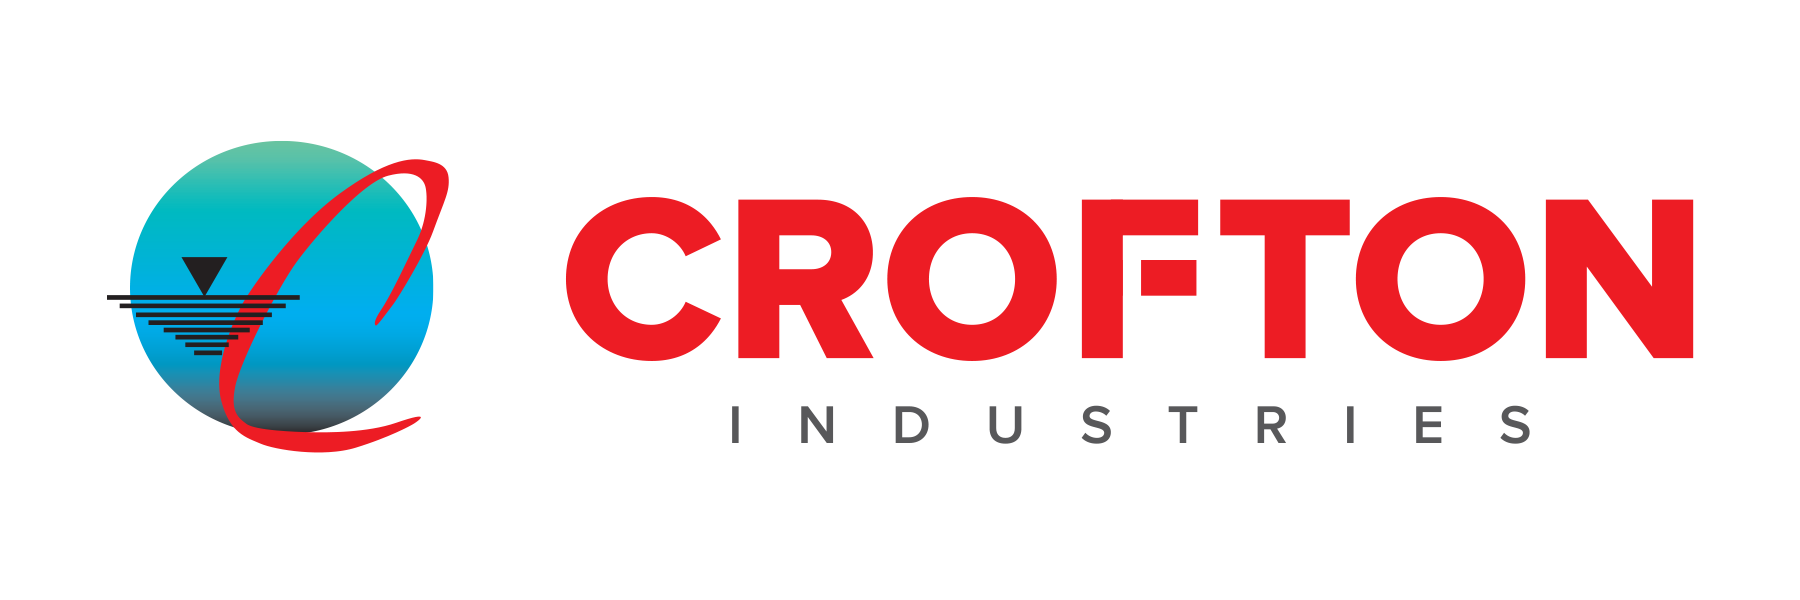 Crofton Industries: Commercial Diving, Marine Construction, Crane Rental & Rigging